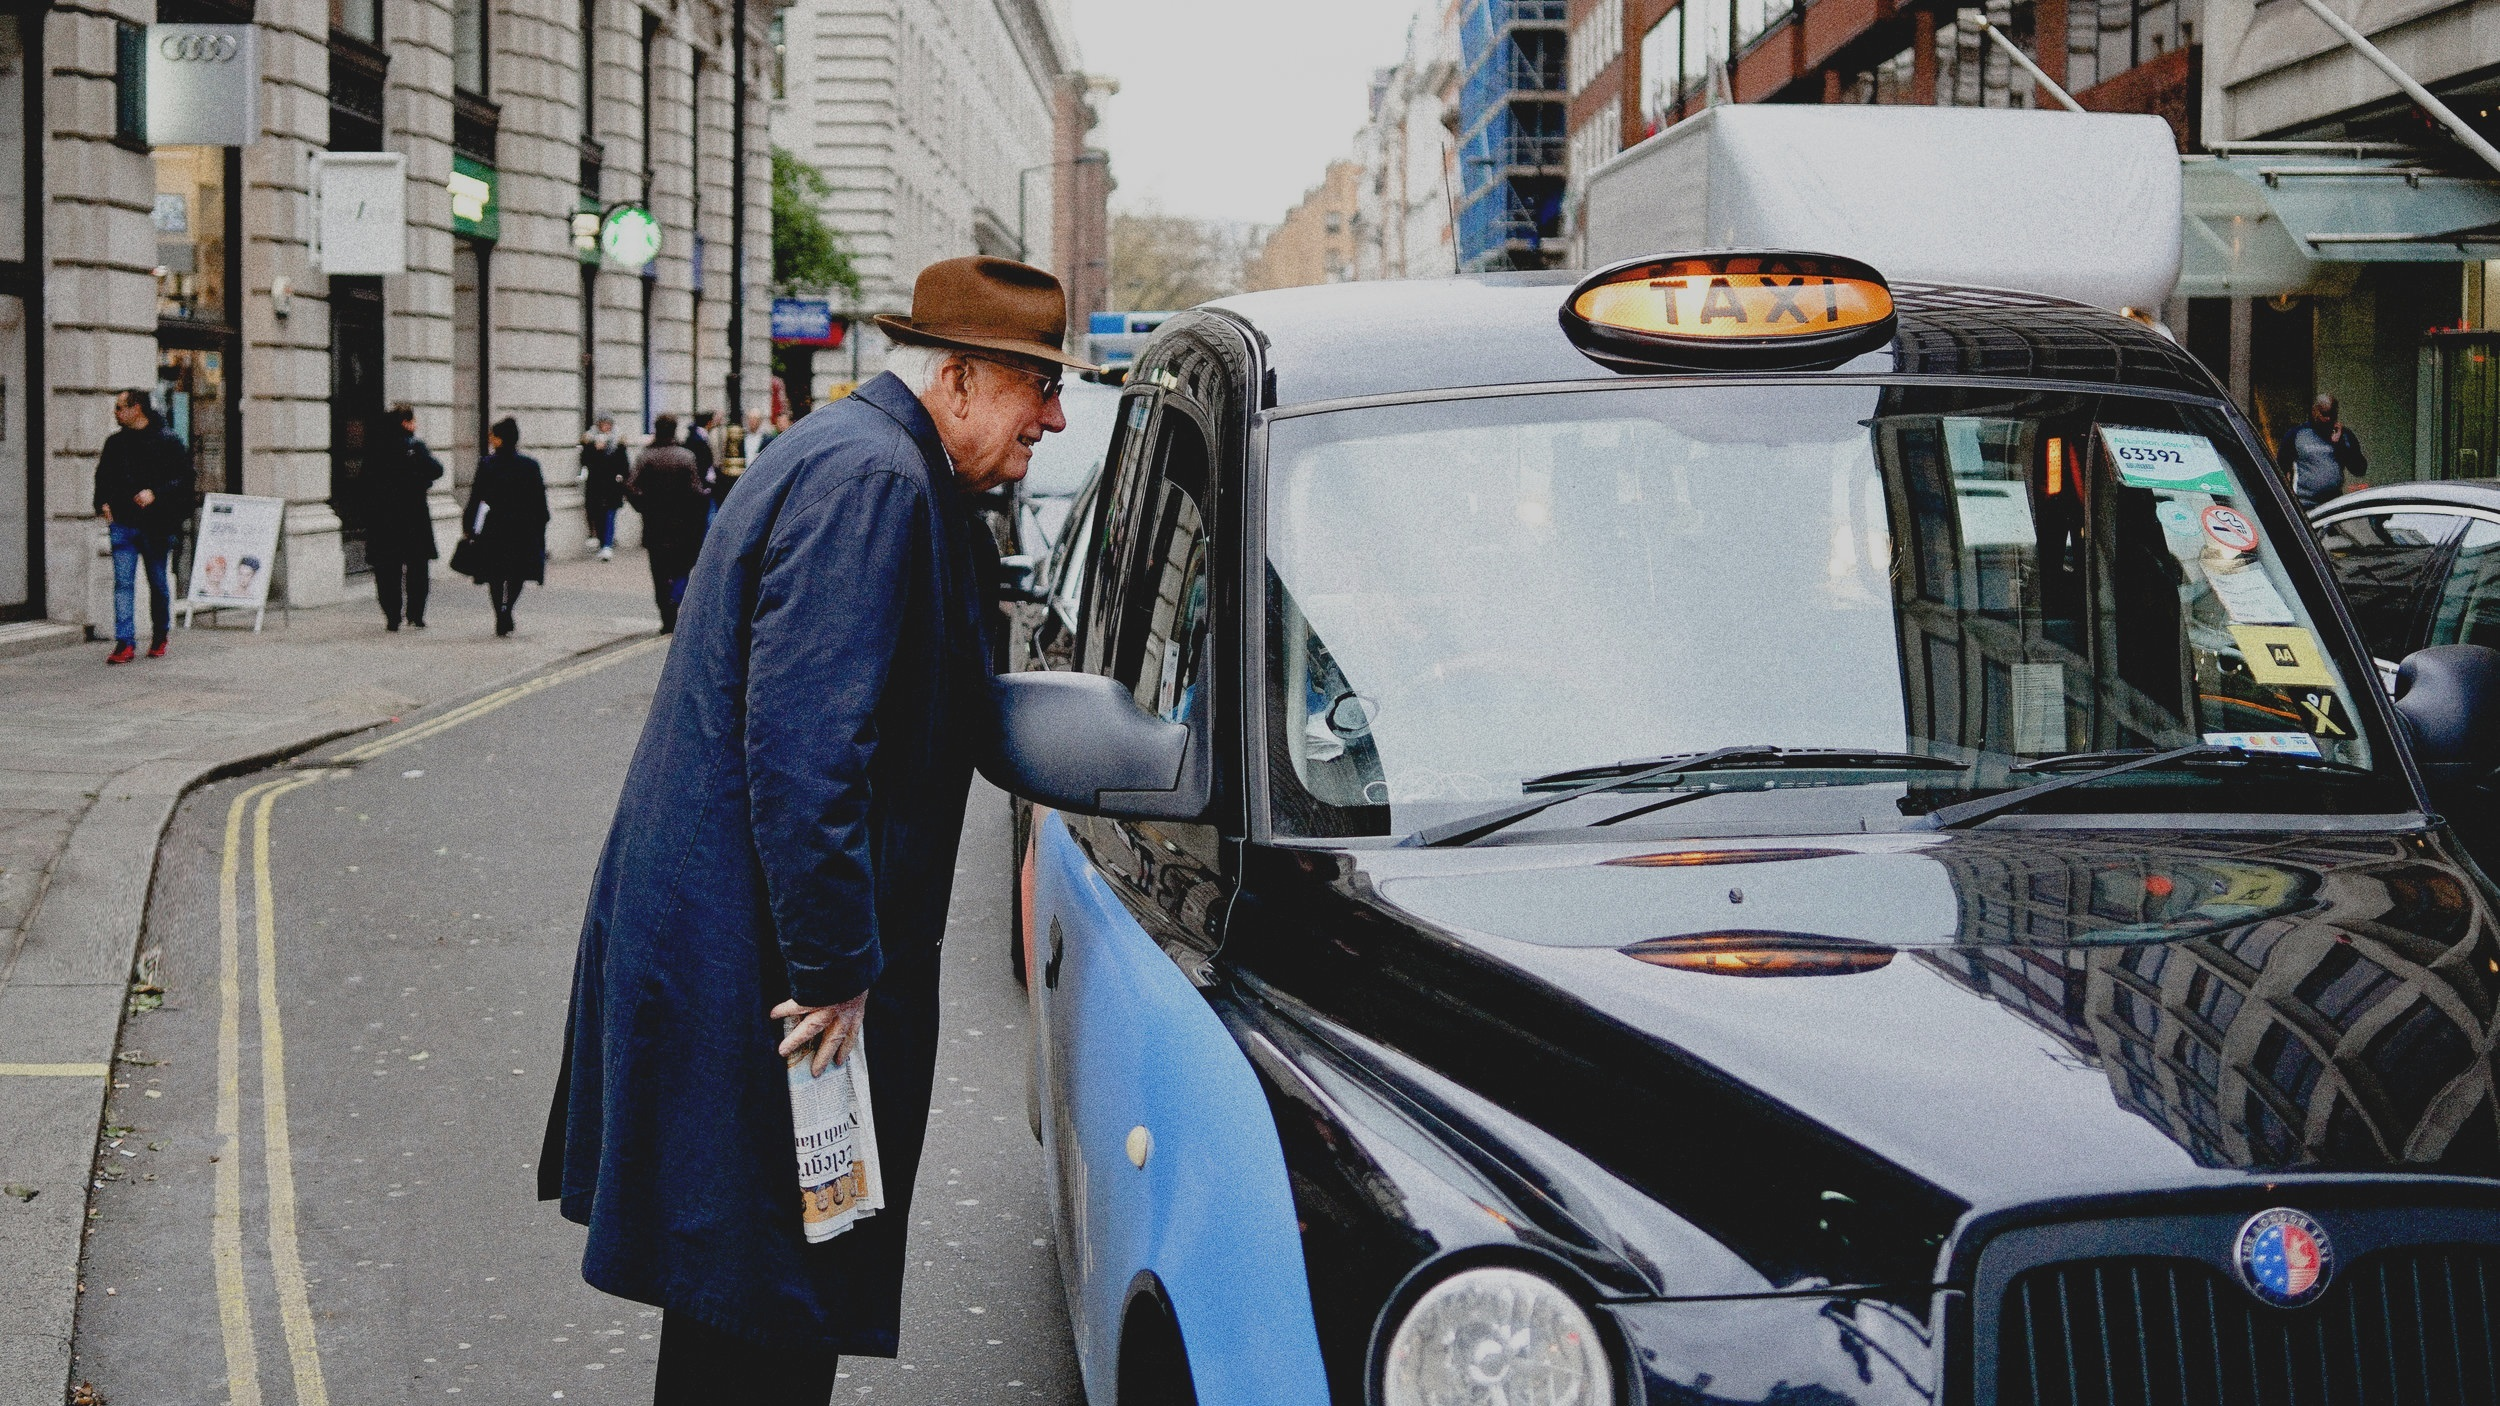 A price and service comparison site for taxis and cabs in the UK -